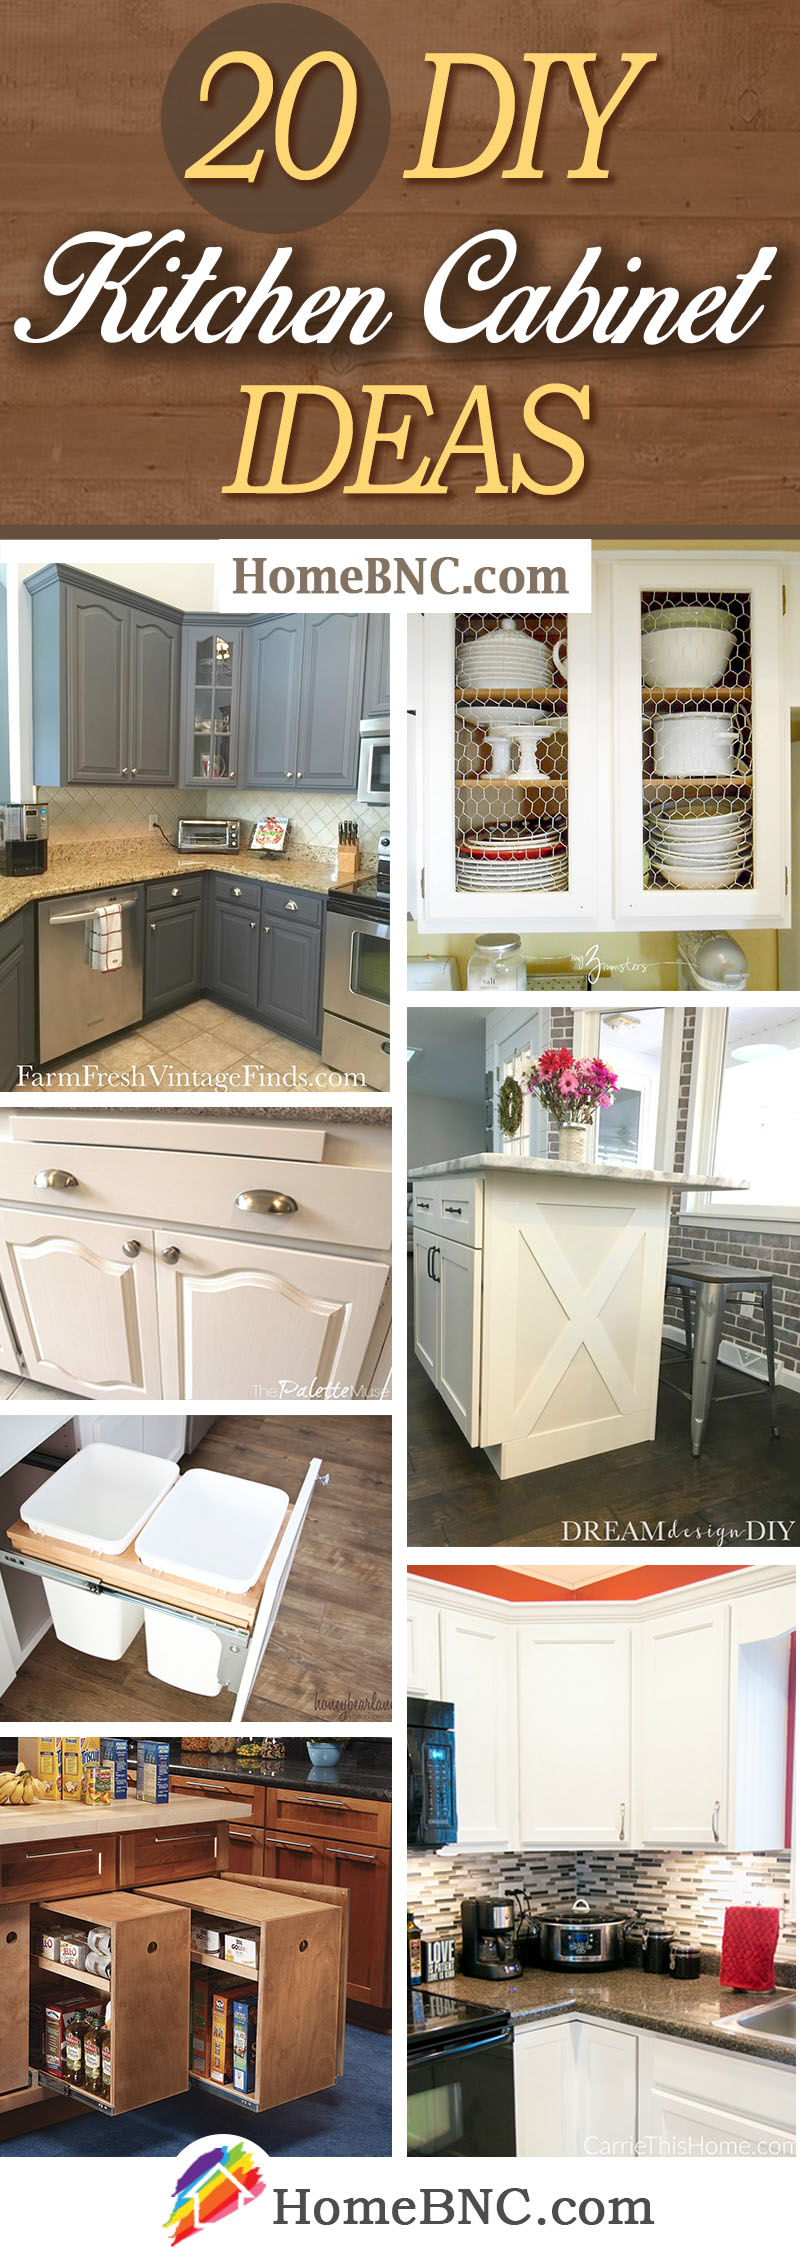 20 Best Diy Kitchen Cabinet Ideas And Designs For 2020